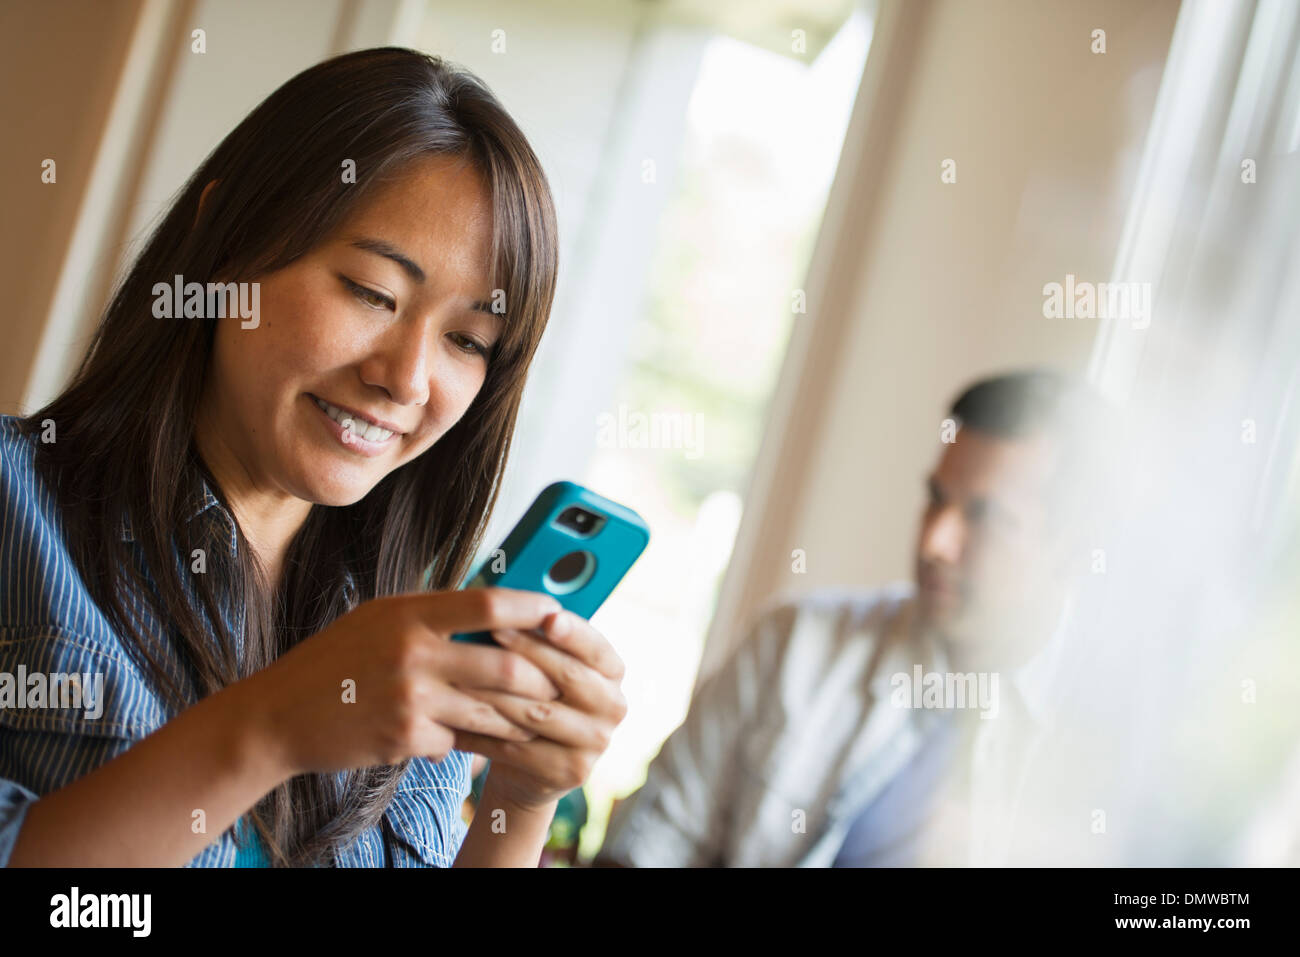 A woman checking her smart phone in a cafe. - Stock Image